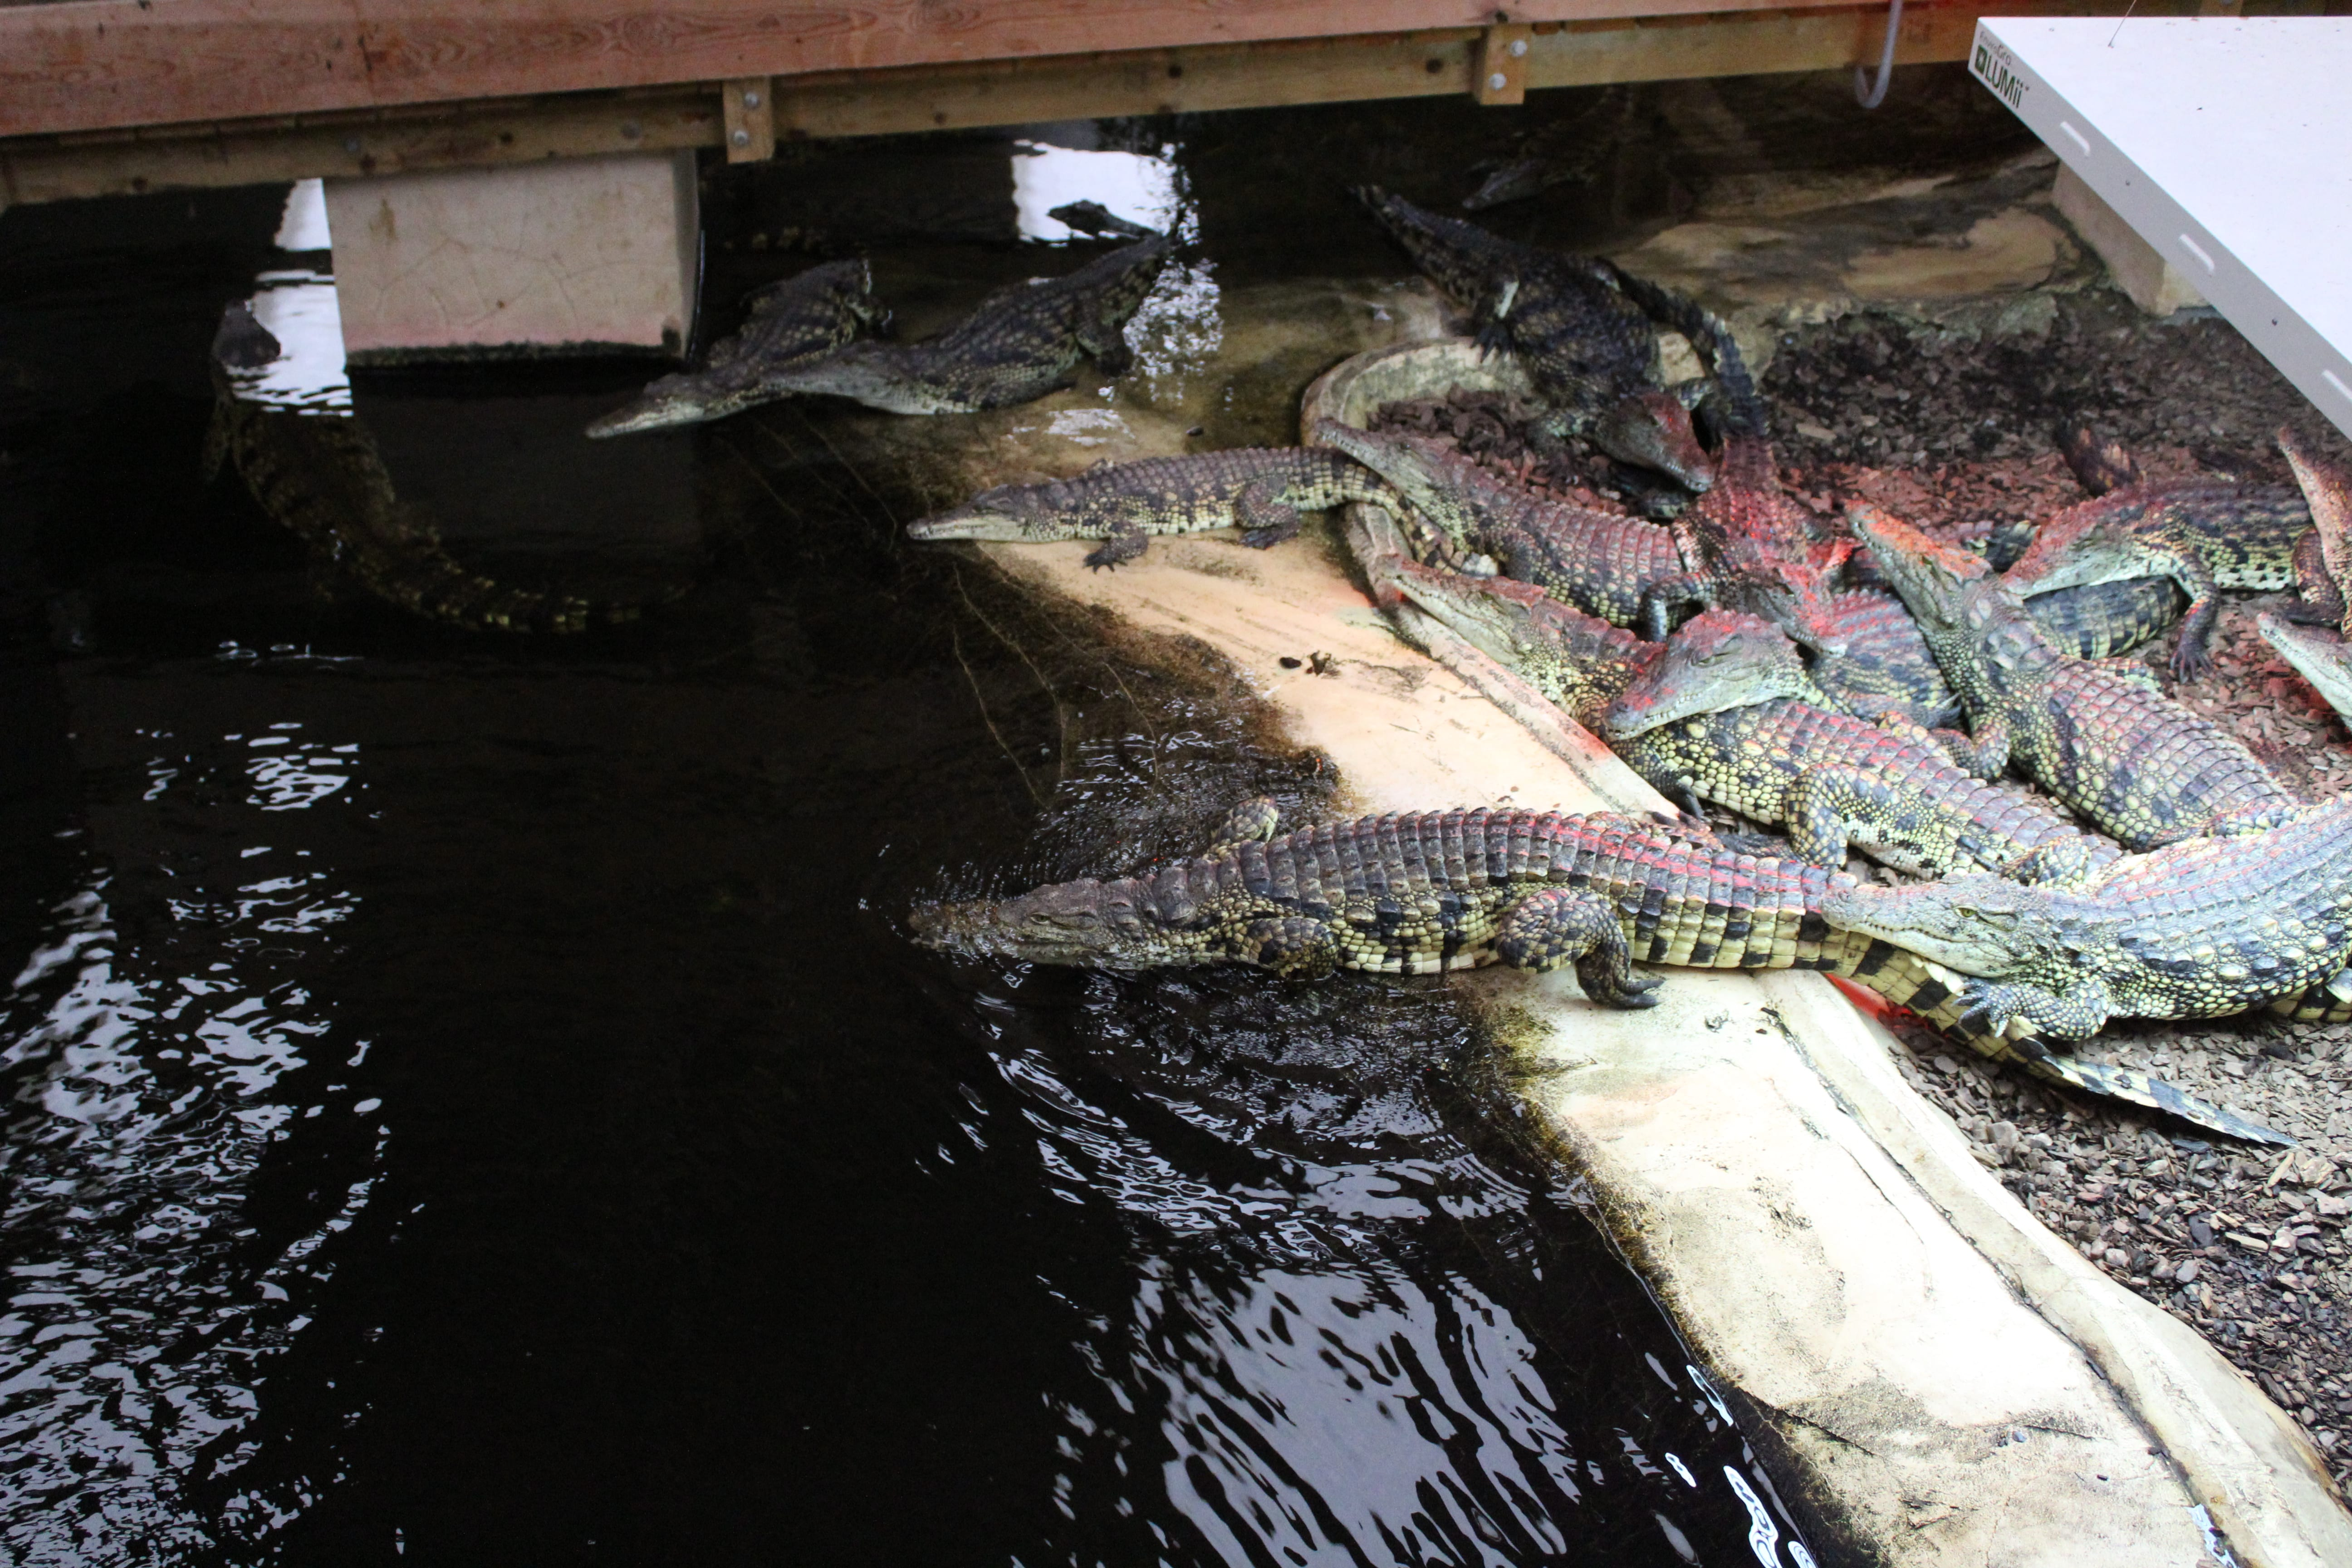 Nile Crocodile Feeding Experience